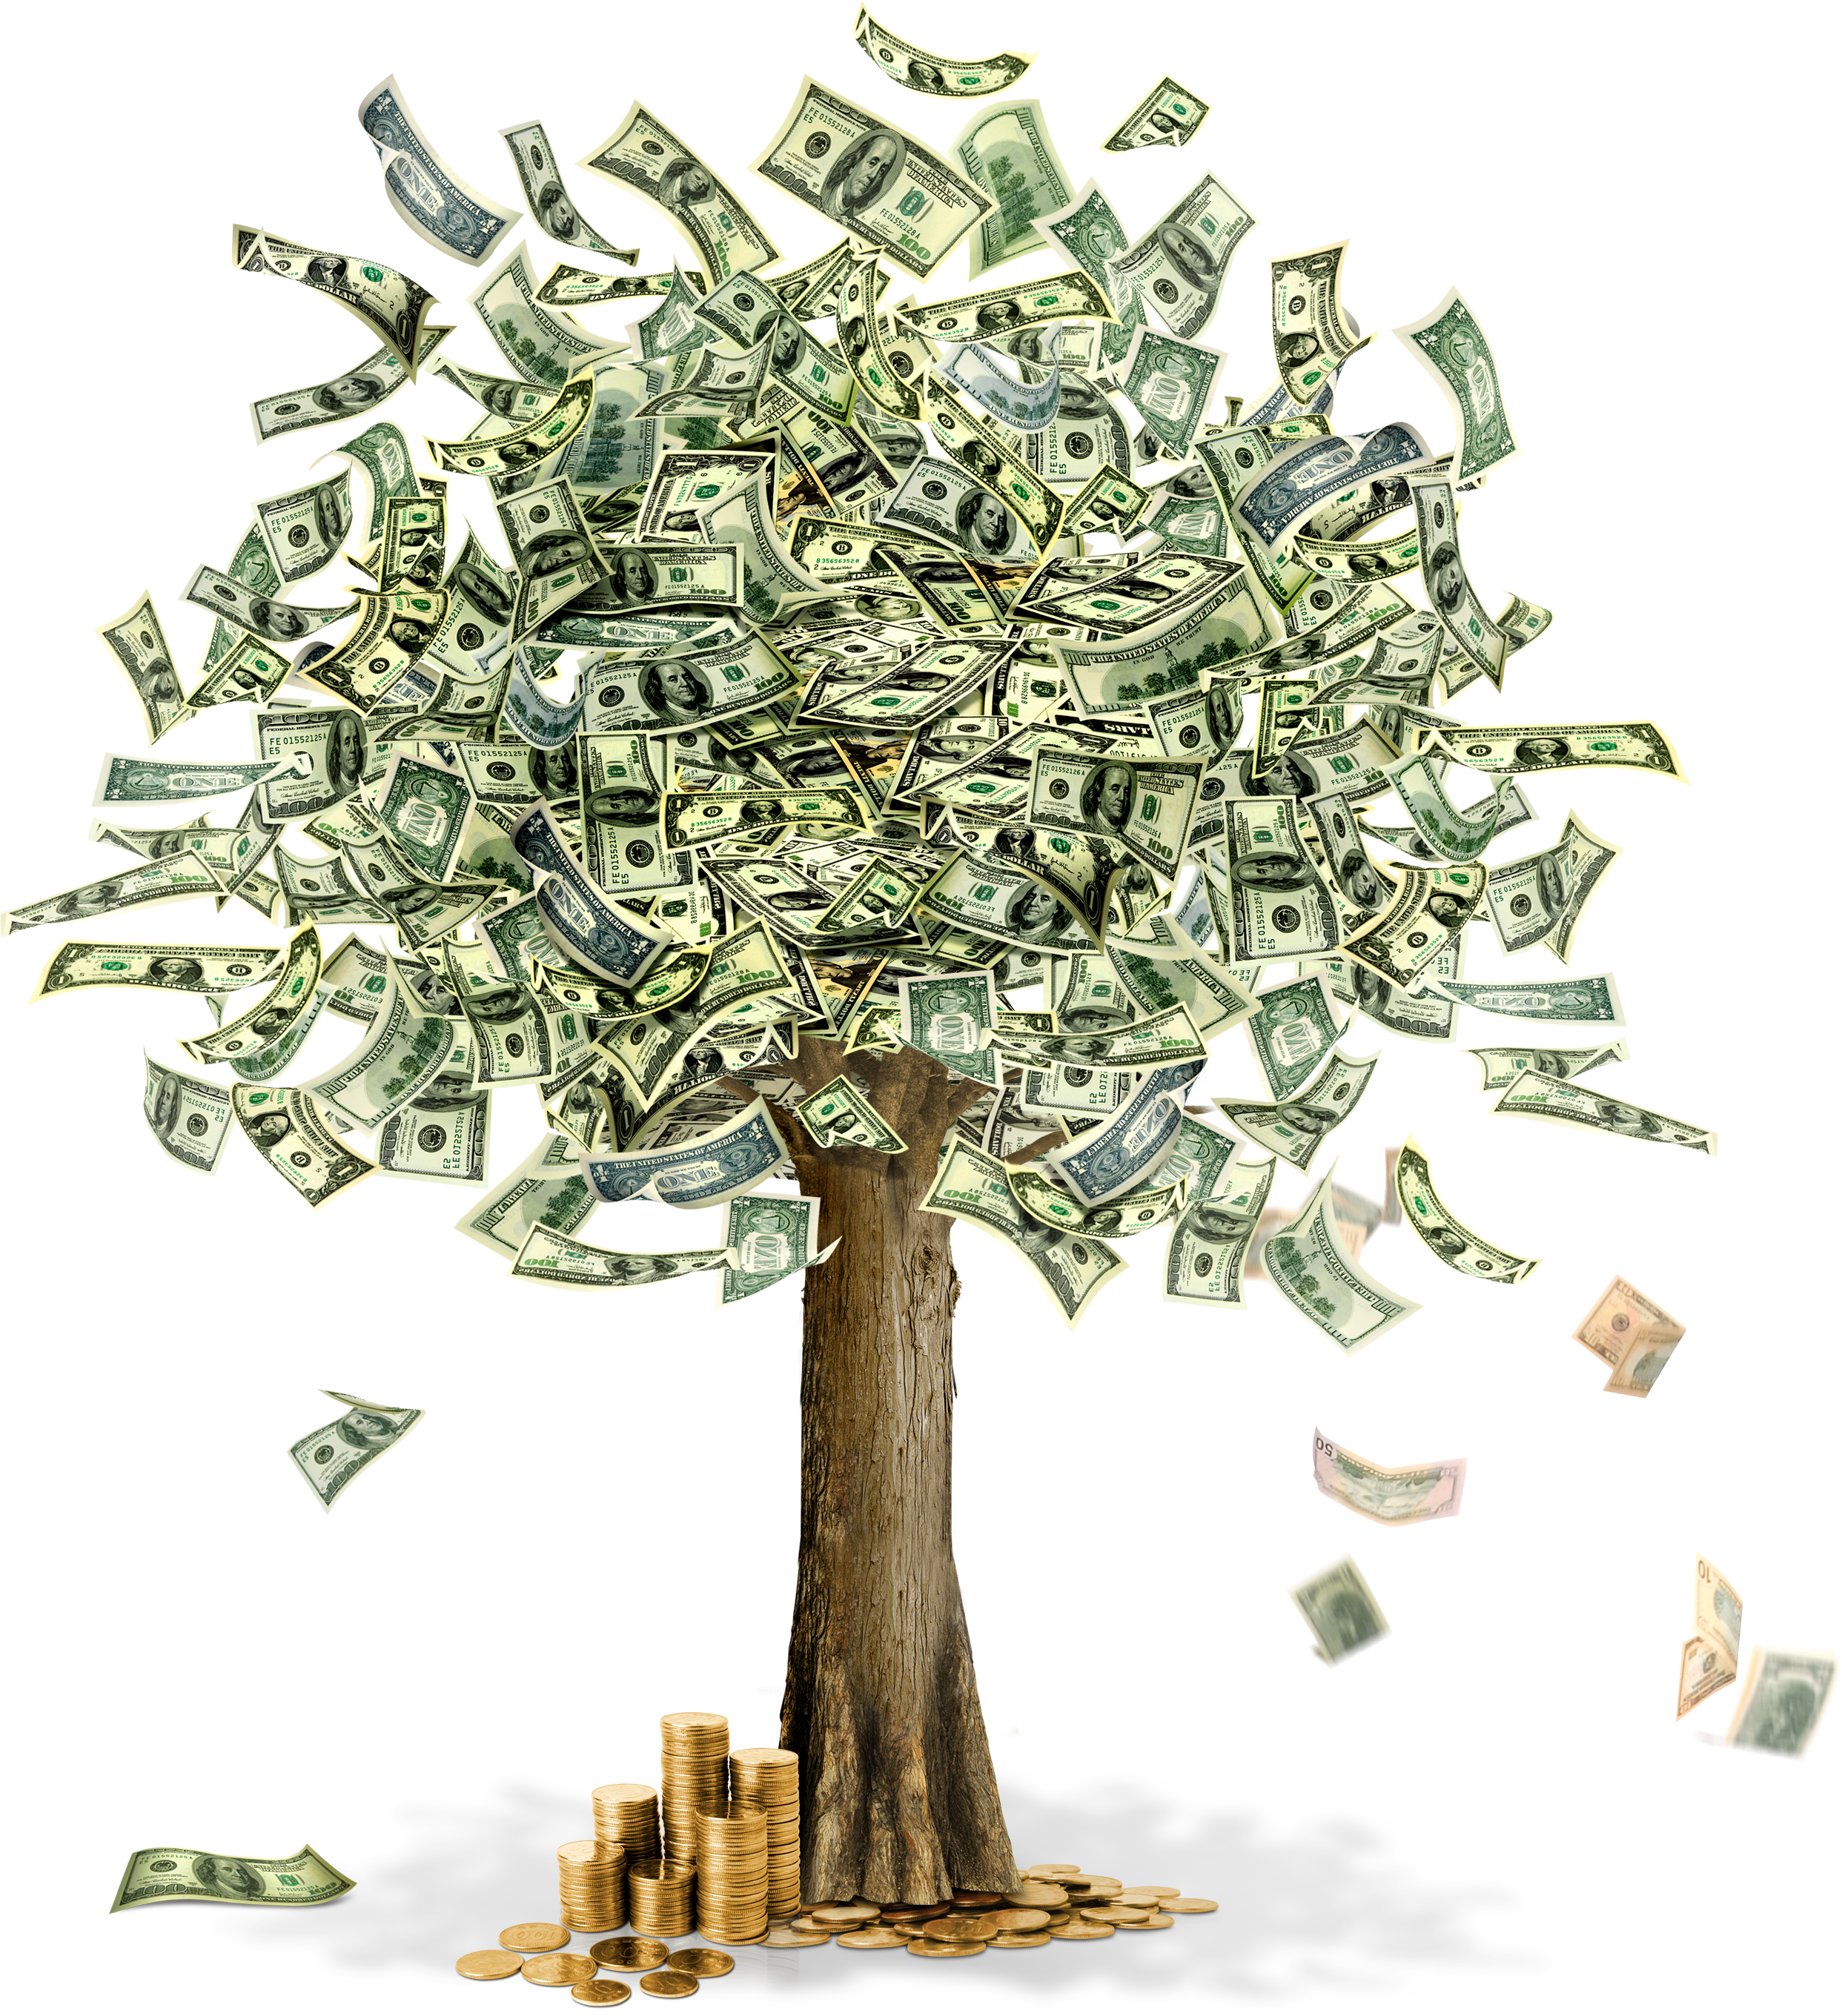 Money tree png. Image